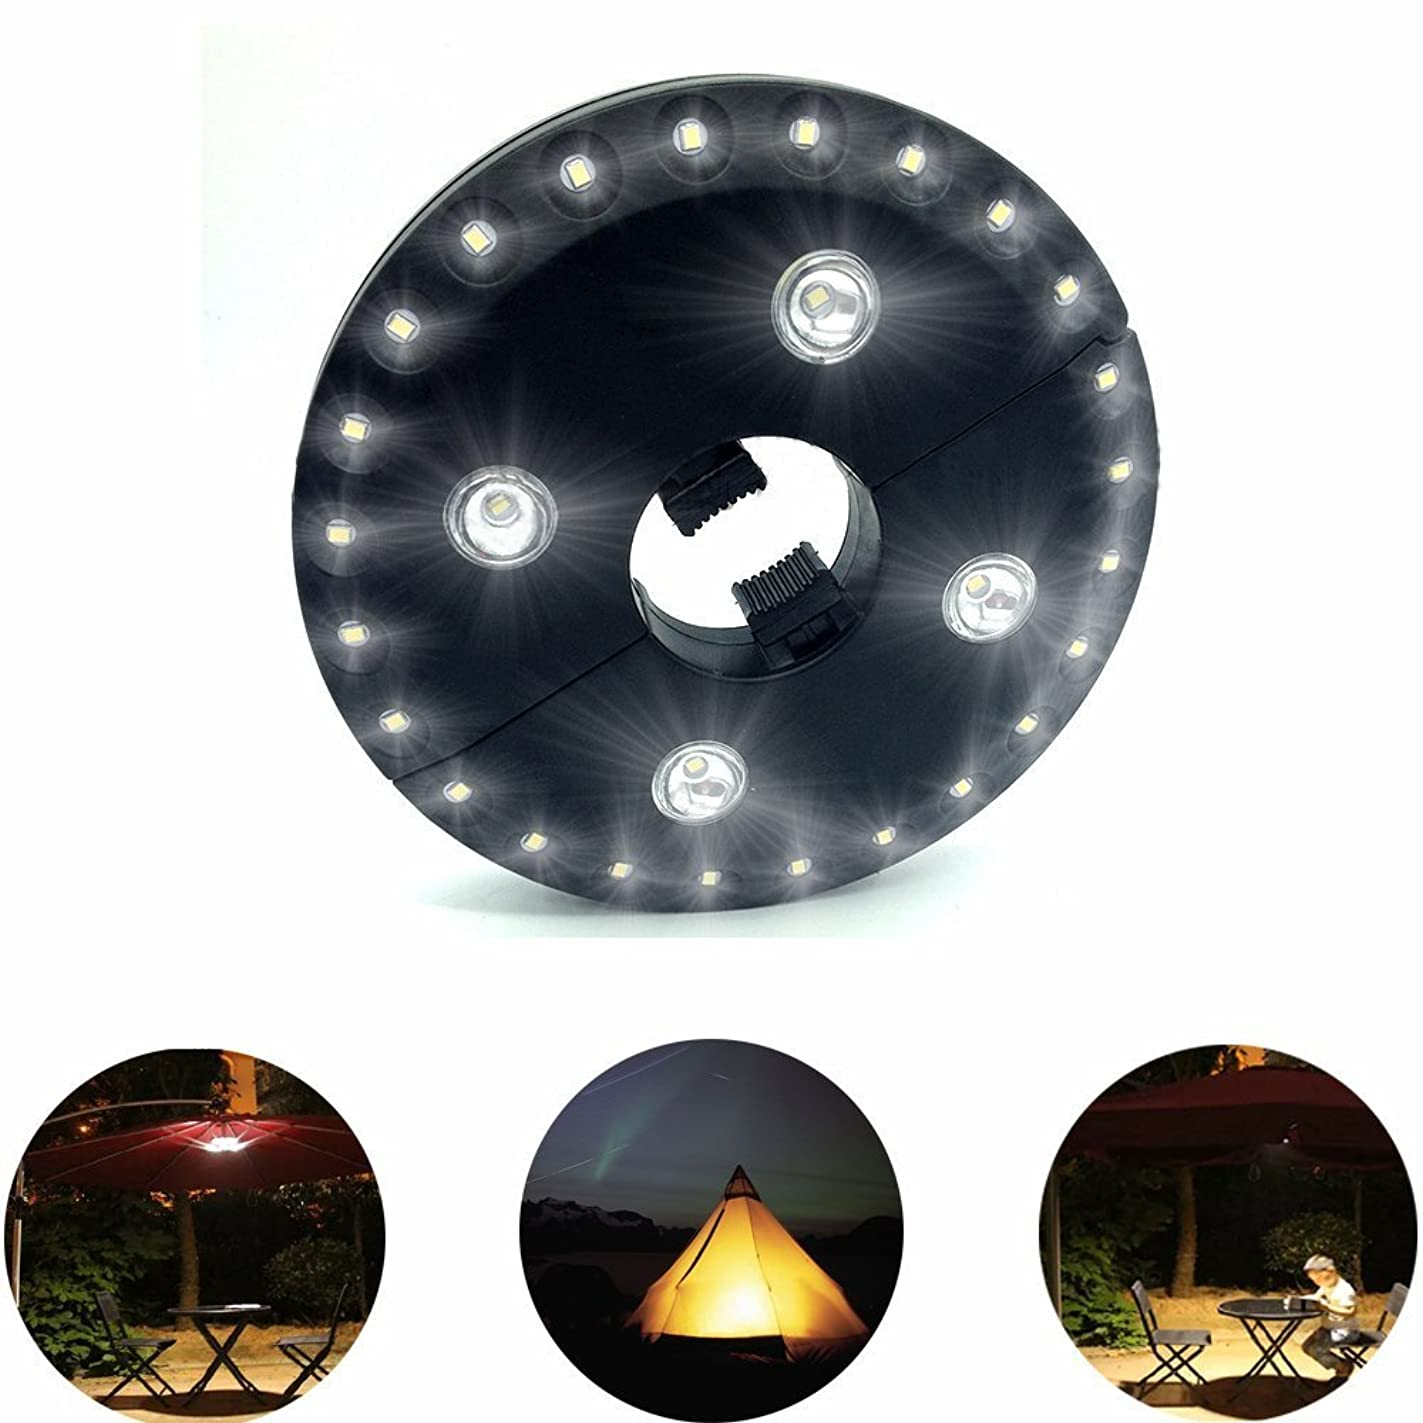 AIDOUT Patio Umbrella Lights - 28 LED Night Light 400 Lumens Umbrella Lights Battery Operated Umbrella Pole Light Outdoor Lighting - 3 Lighting Mode for Patio Umbrellas, Outdoor Use or Camping Tents